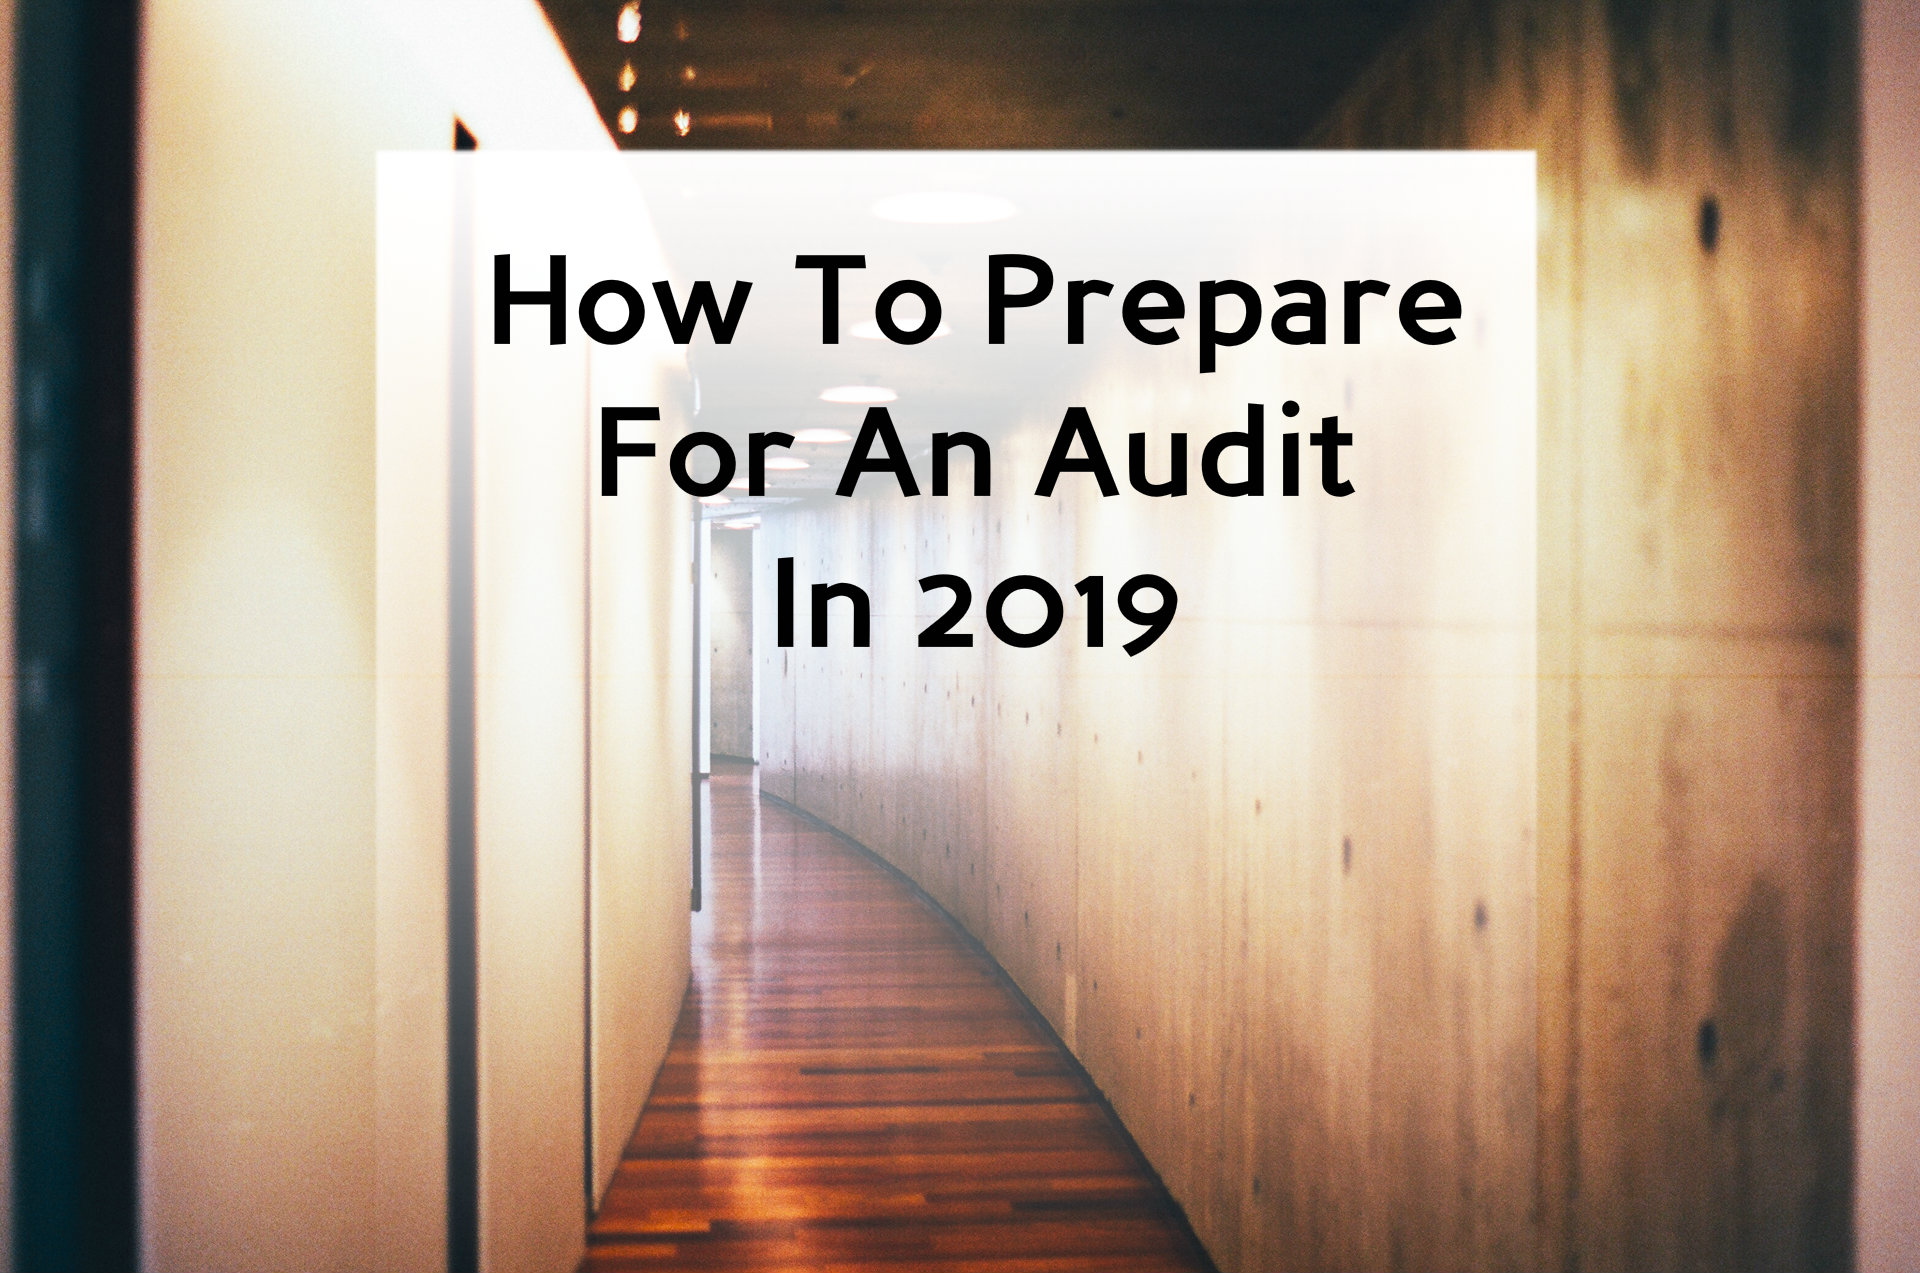 How to Prepare for an Audit in 2019